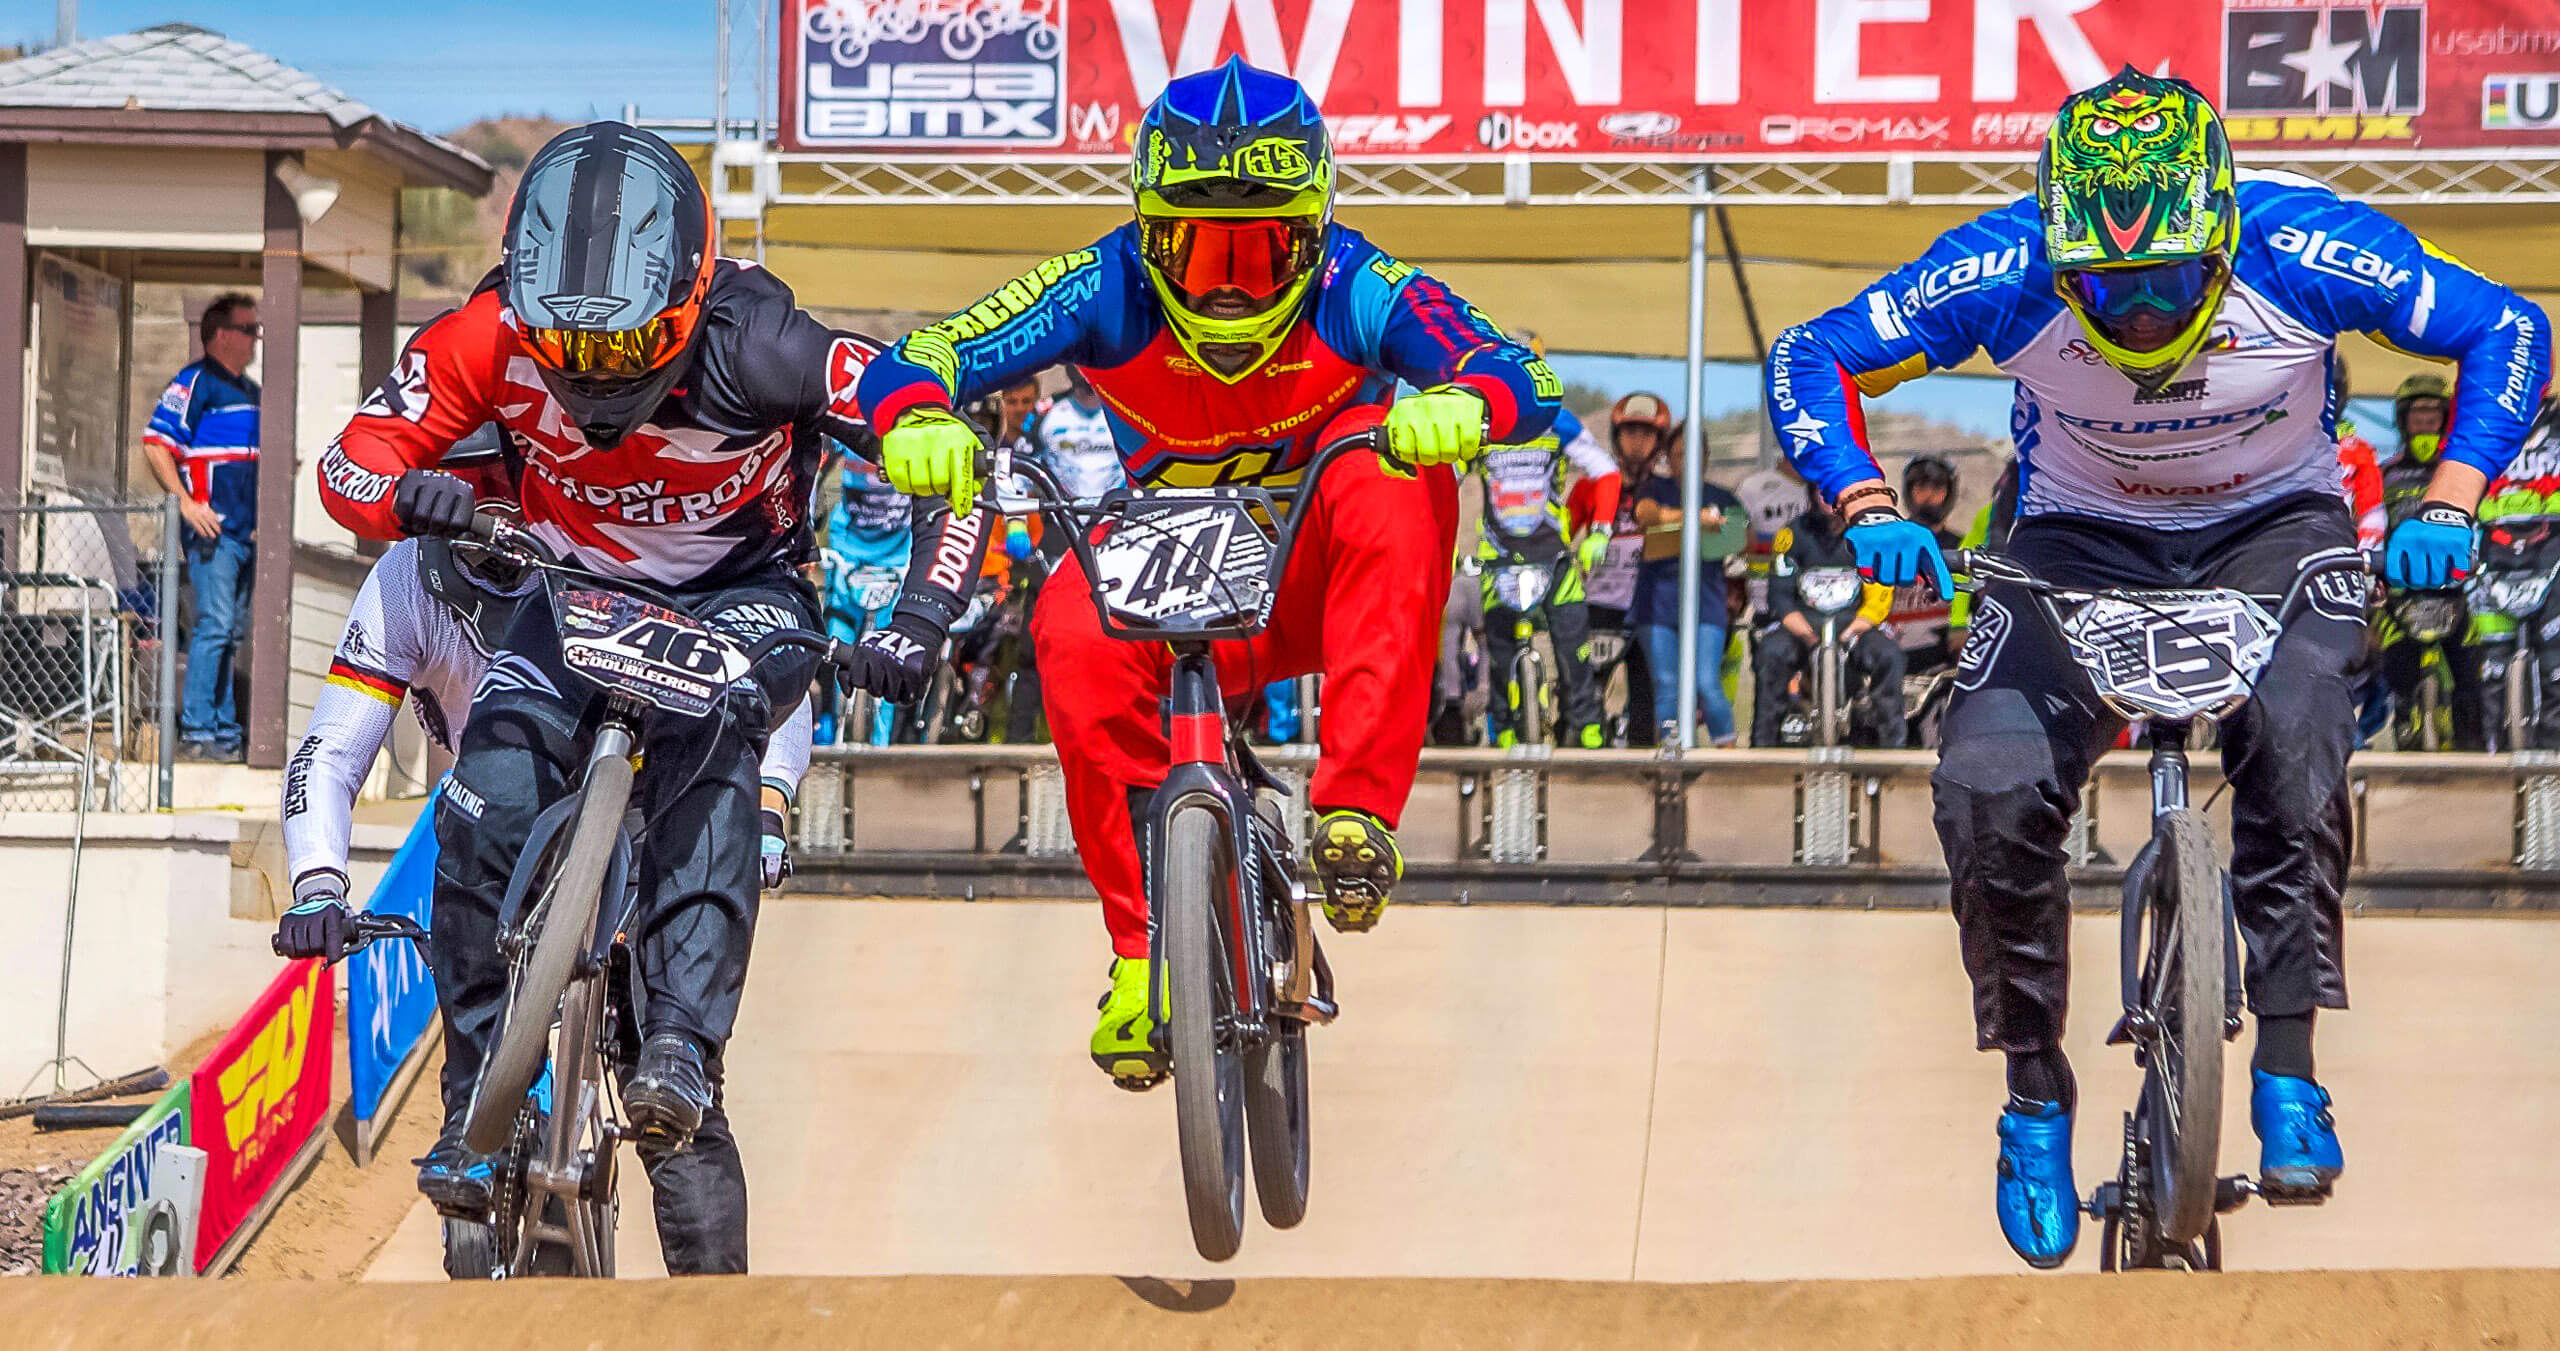 Anthony Dean Winter Nationals 2018 - Kirby Cronk